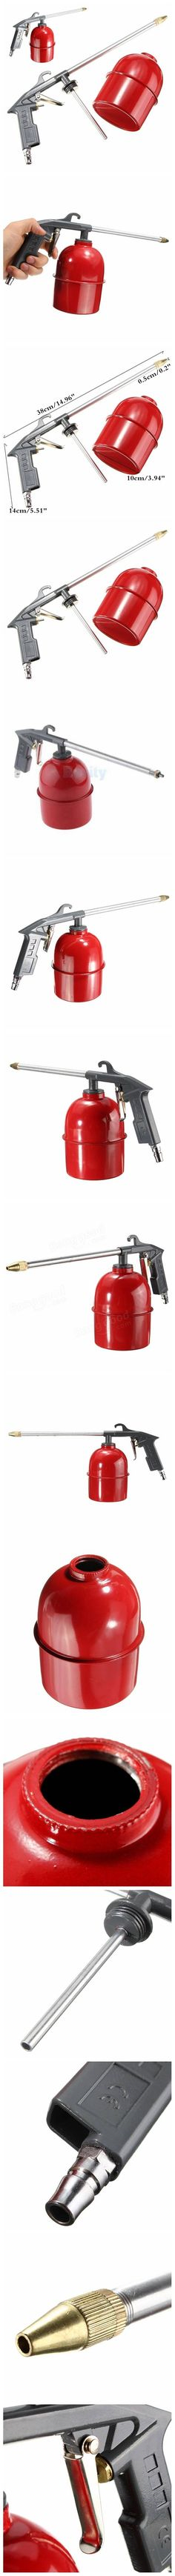 Car Engine Cleaning Tool Solvent Air Sprayer Siphon Degreaser For House Car Cleaning Sale - Banggood.com